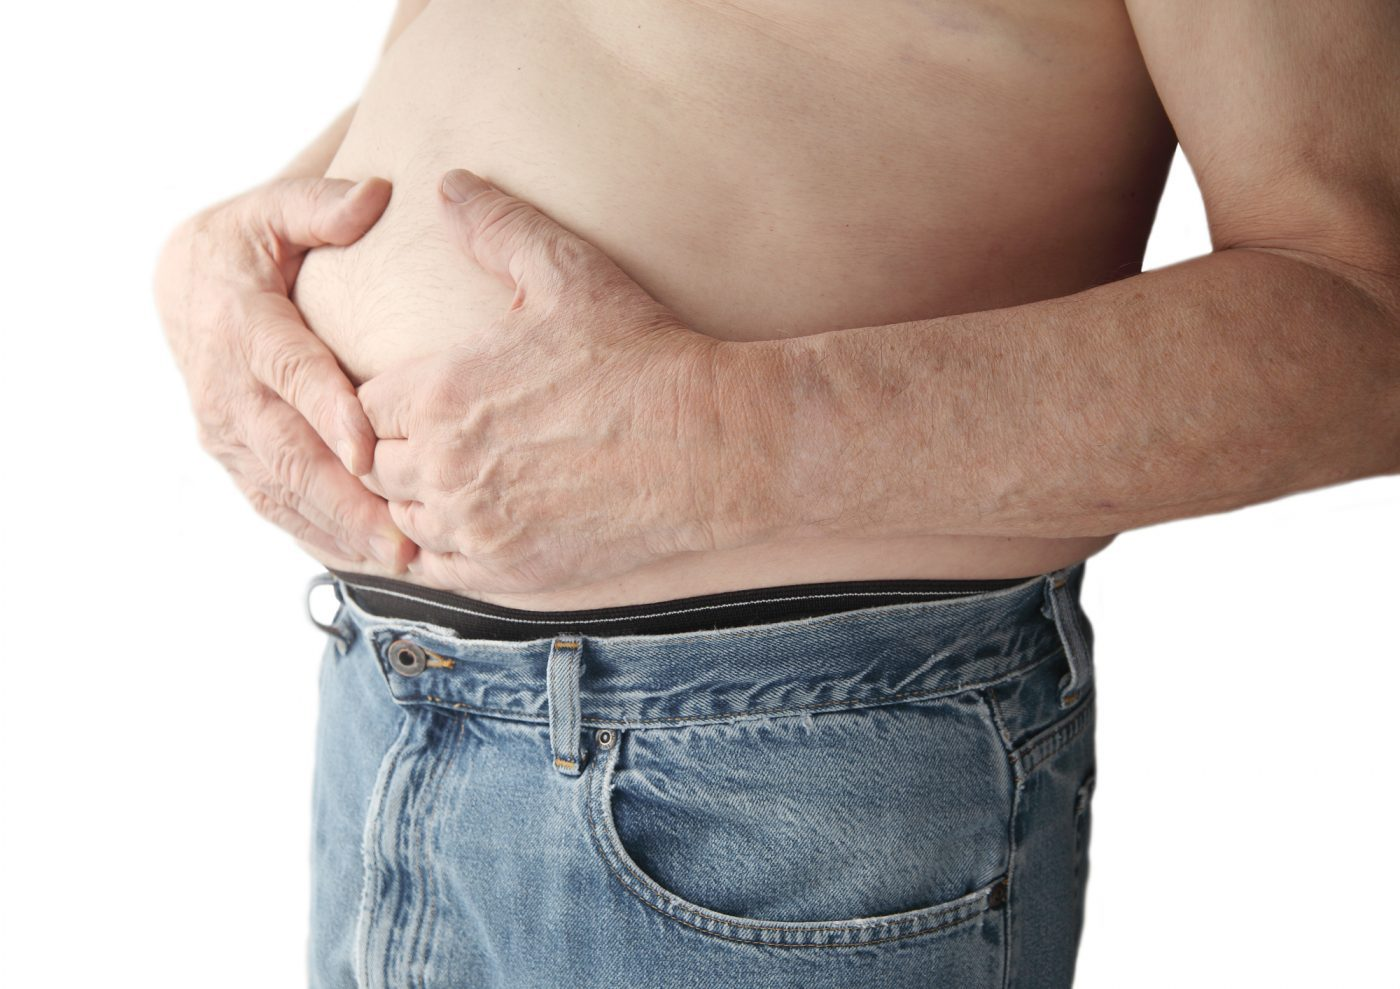 Diverticula are small out pouches that protrude on the outside of the colon in areas where the muscles of the colon are relatively weak.